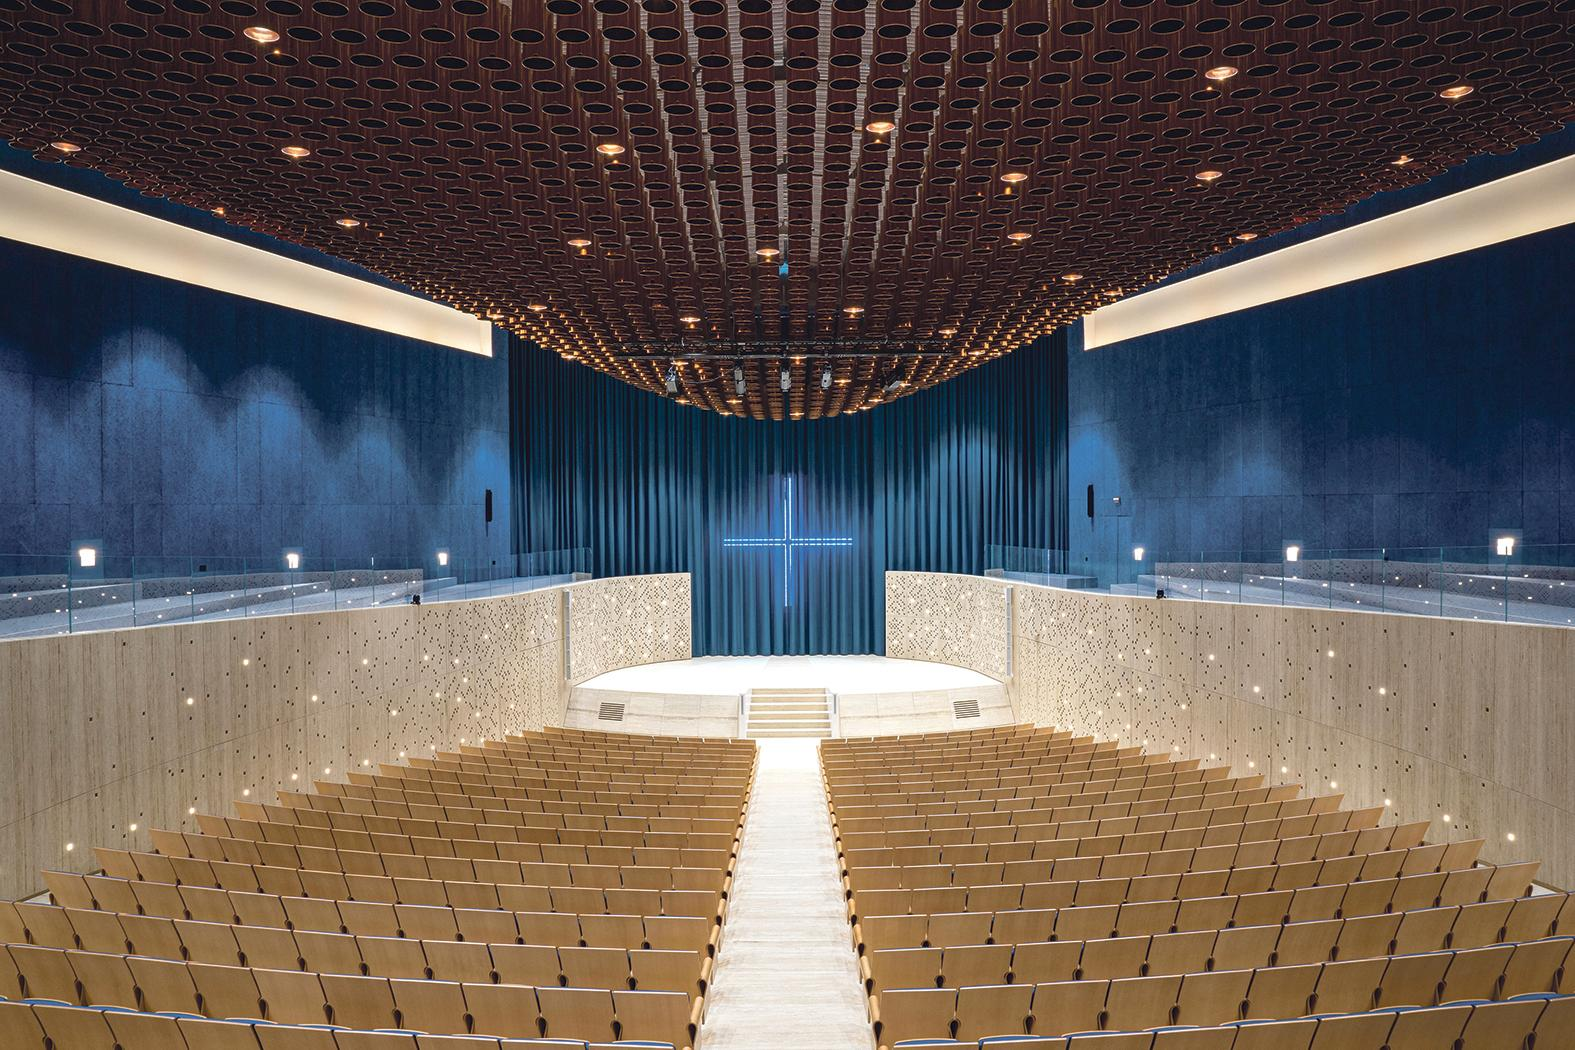 The Sacred Place auditorium in Blata l-Bajda, designed by Atelier Maison